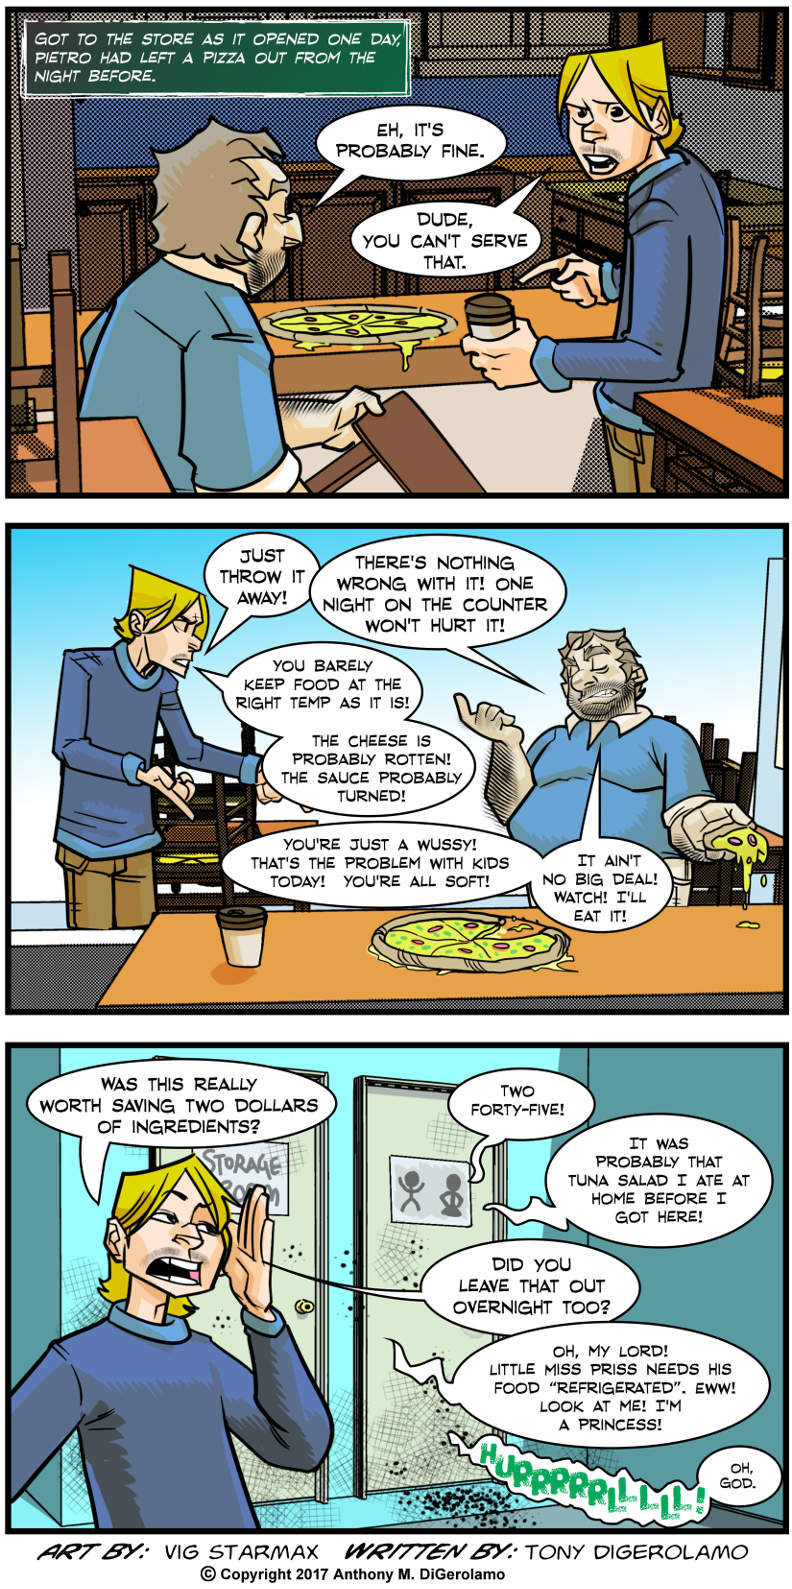 Tales of Pizza:  How a Boss Saves Money